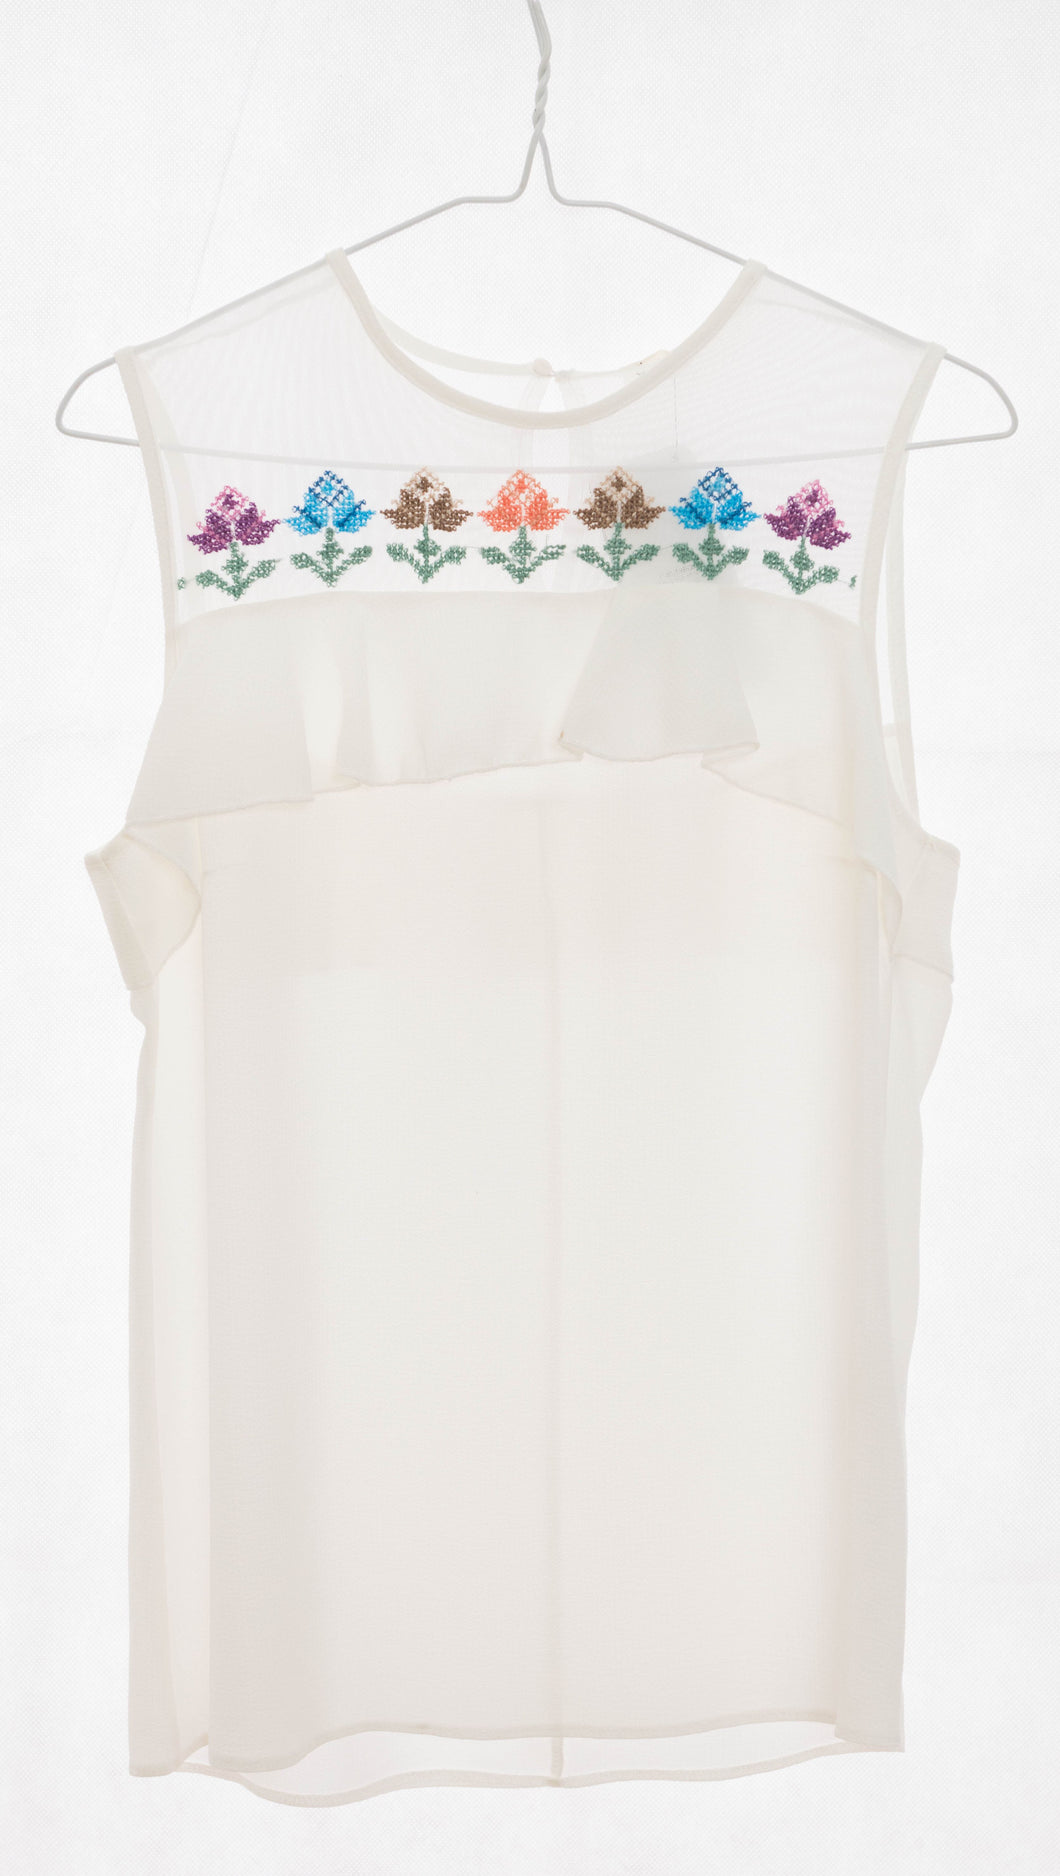 White sleeveless blouse from Razan fabric and chiffon raffles with stylish embroidery - Falastini Brand